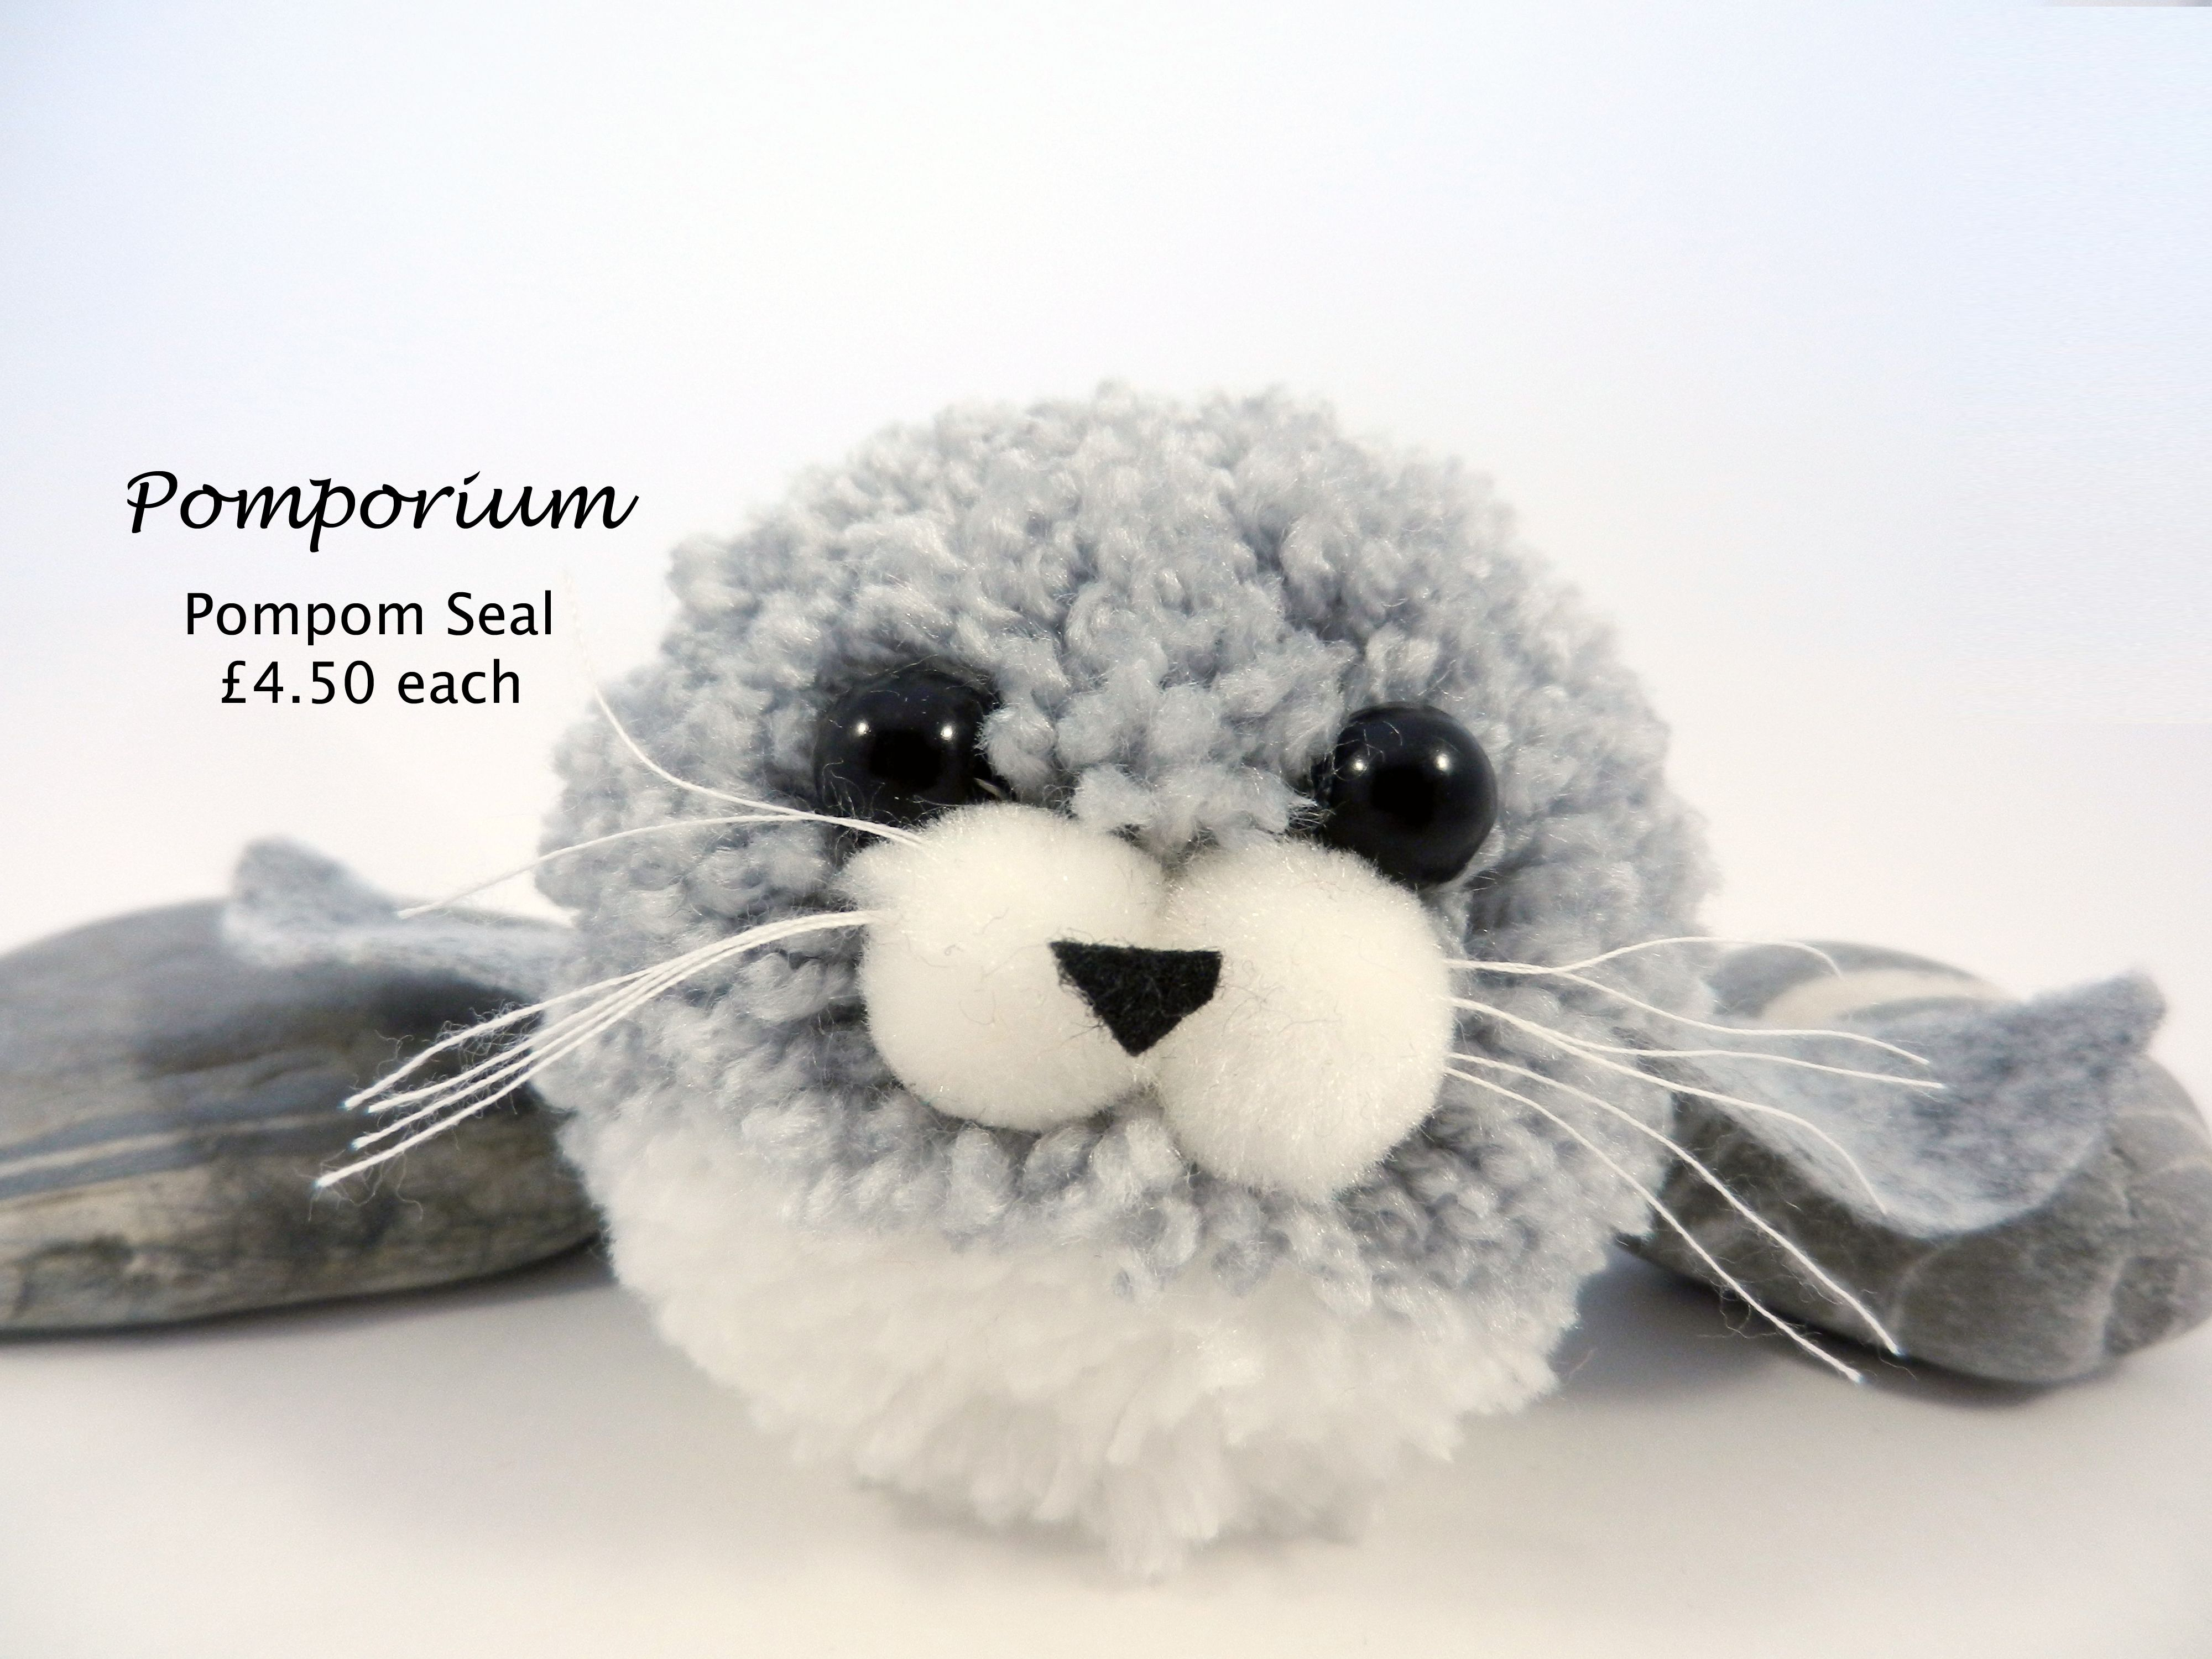 An adorable little pompom seal. Made to order. See more @ www.facebook.com/pomporium